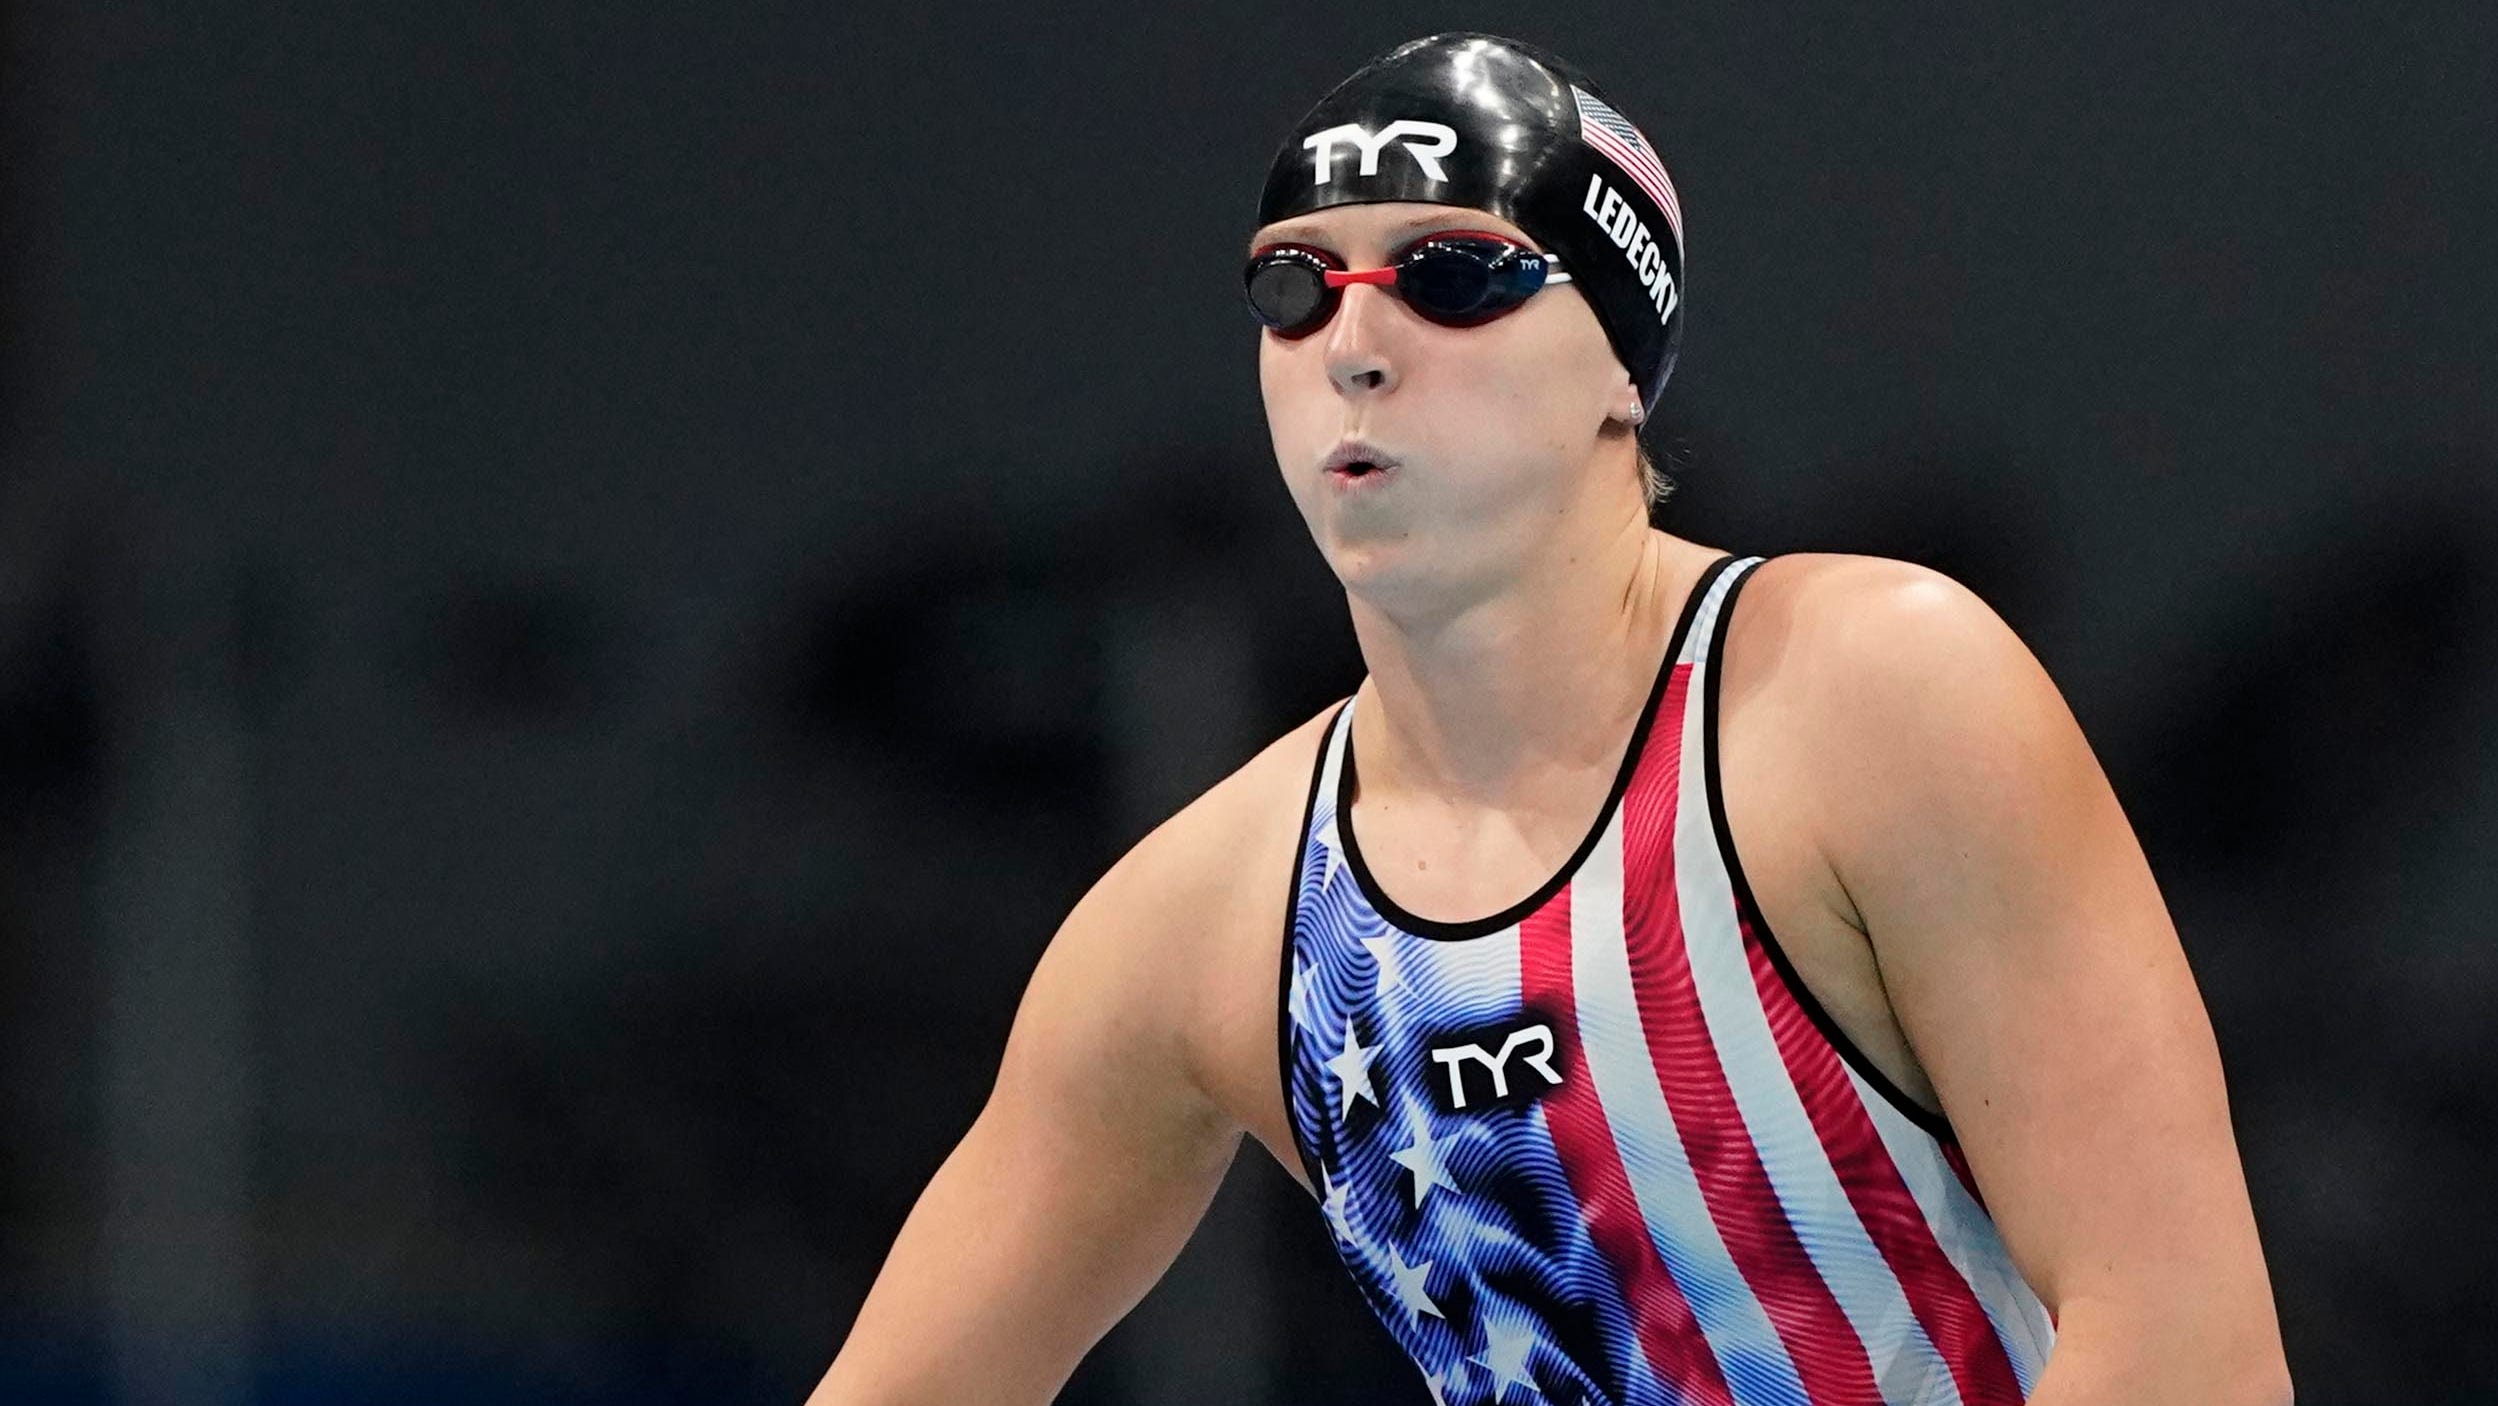 Tokyo Olympics live updates: Katie Ledecky chases history; Team USA goes for 3x3 basketball gold on Day 5